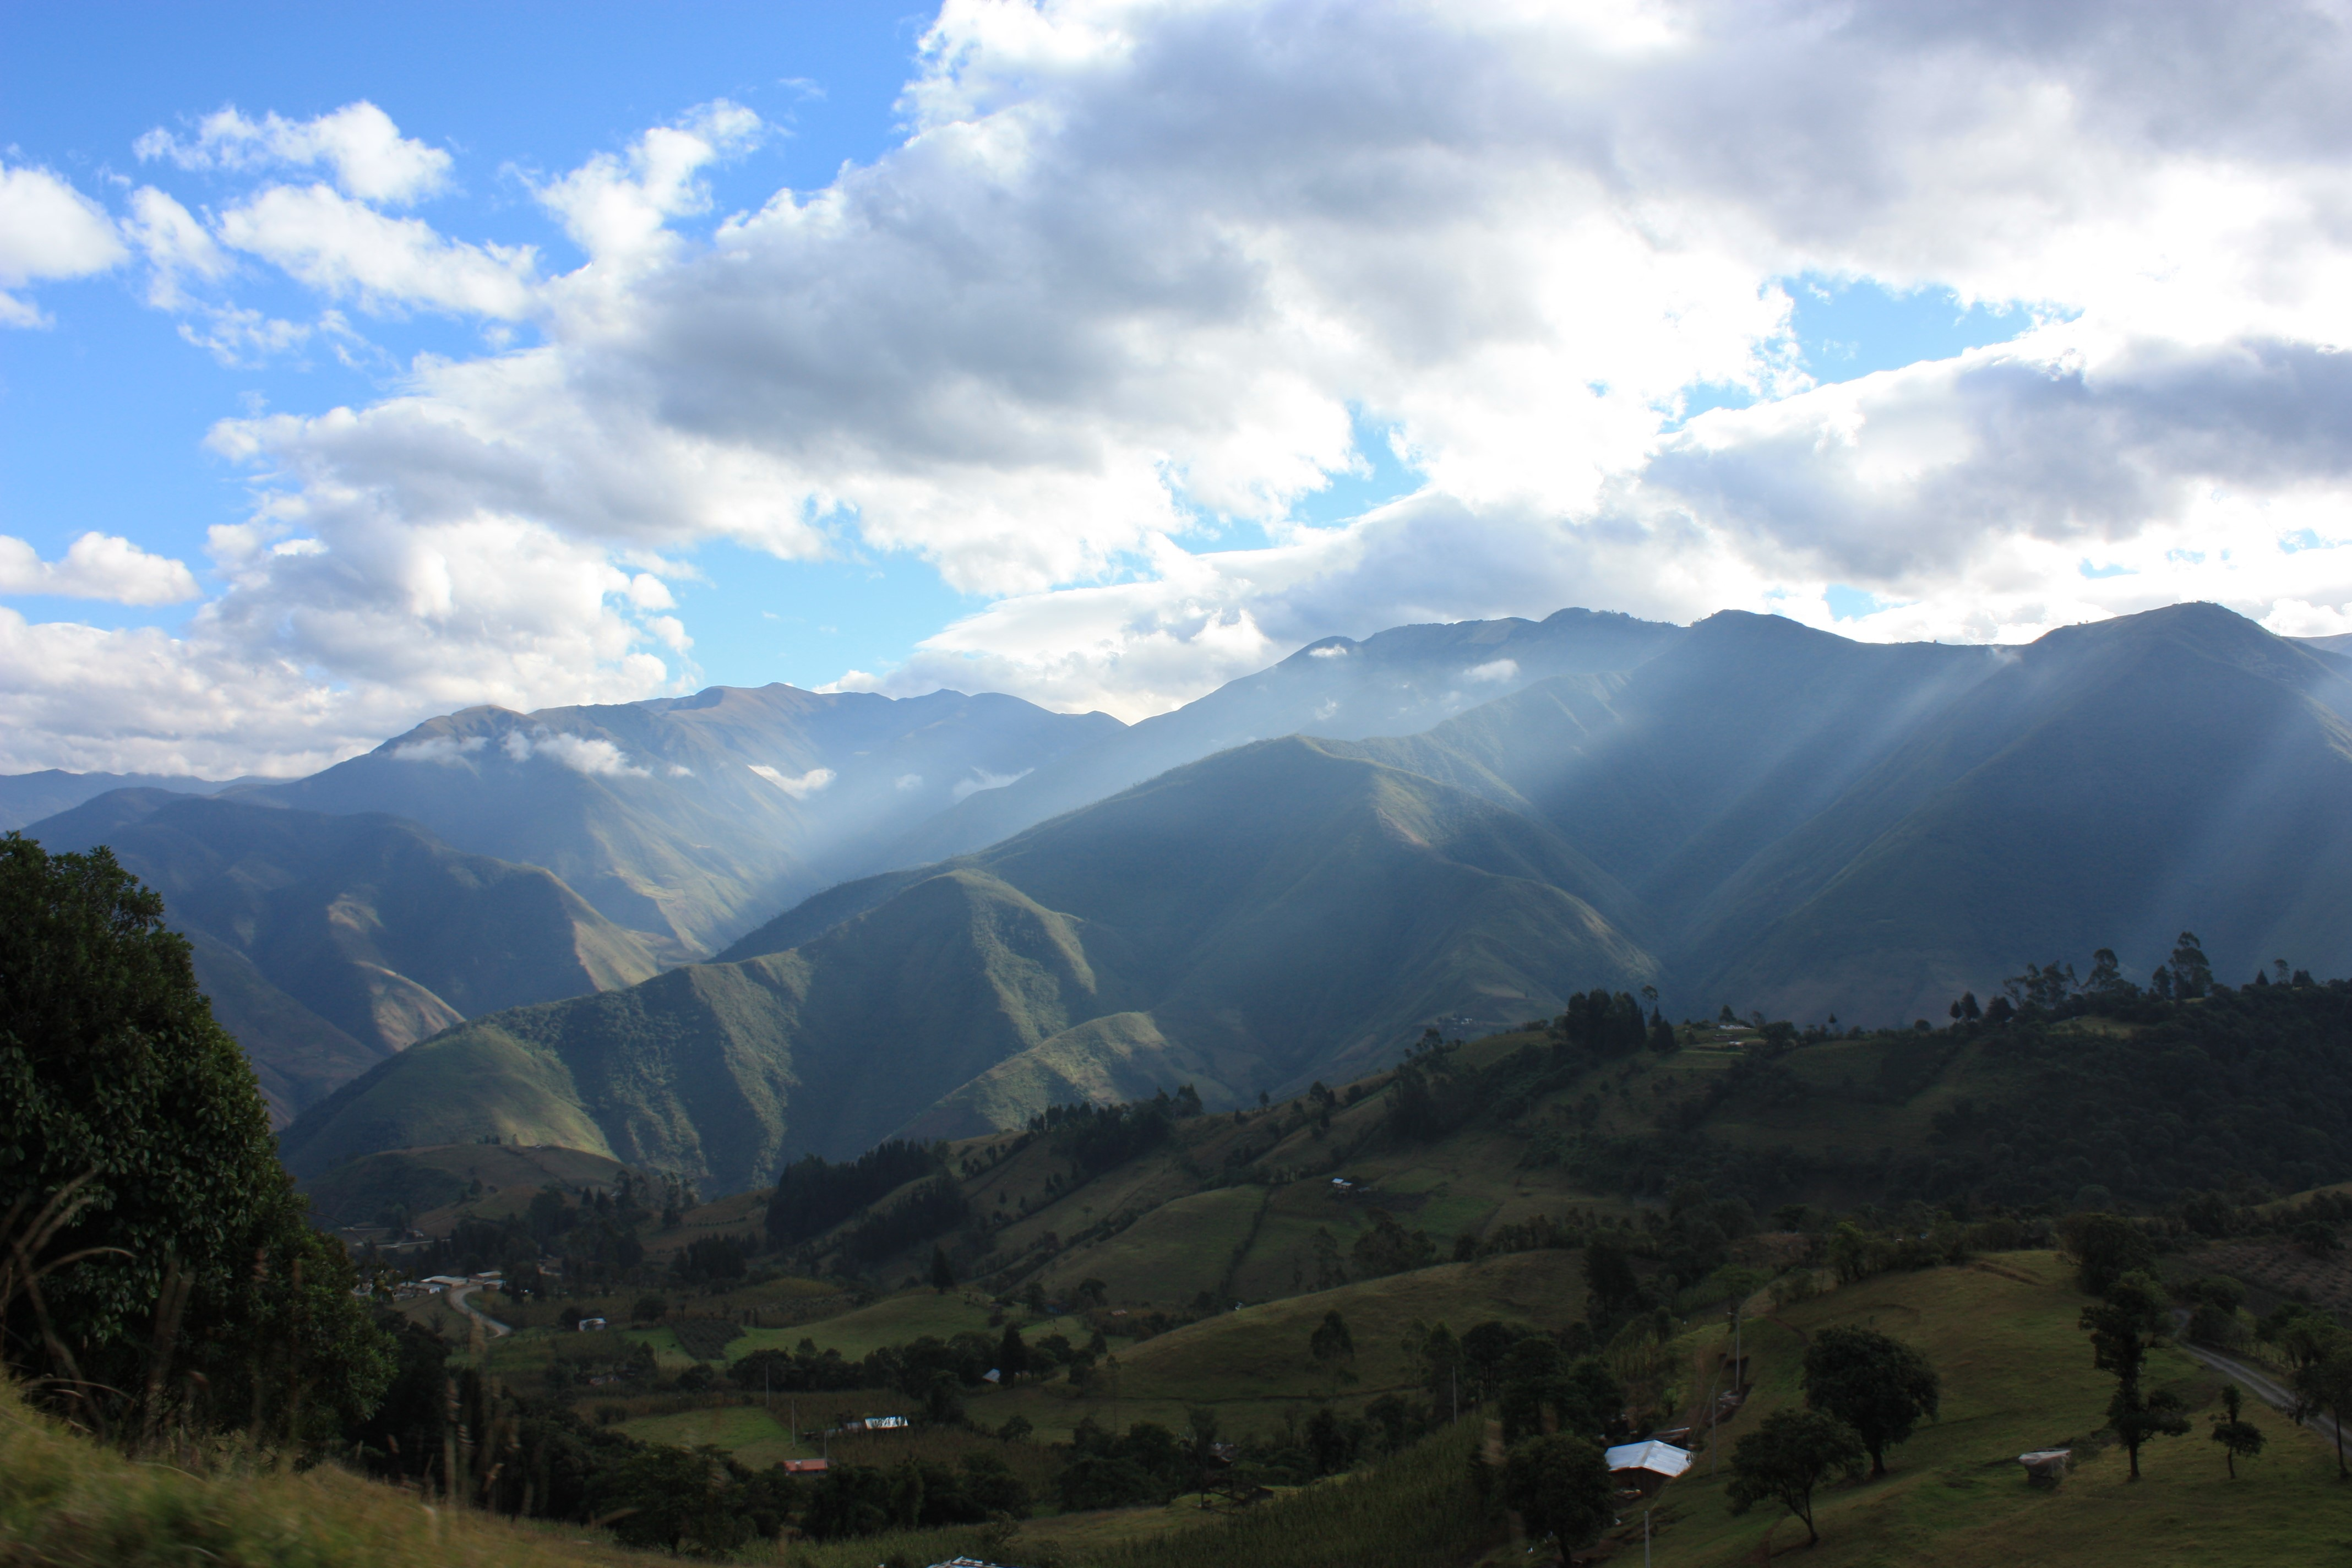 Landscape attributes determine restoration outcomes in the Ecuadorian Andes